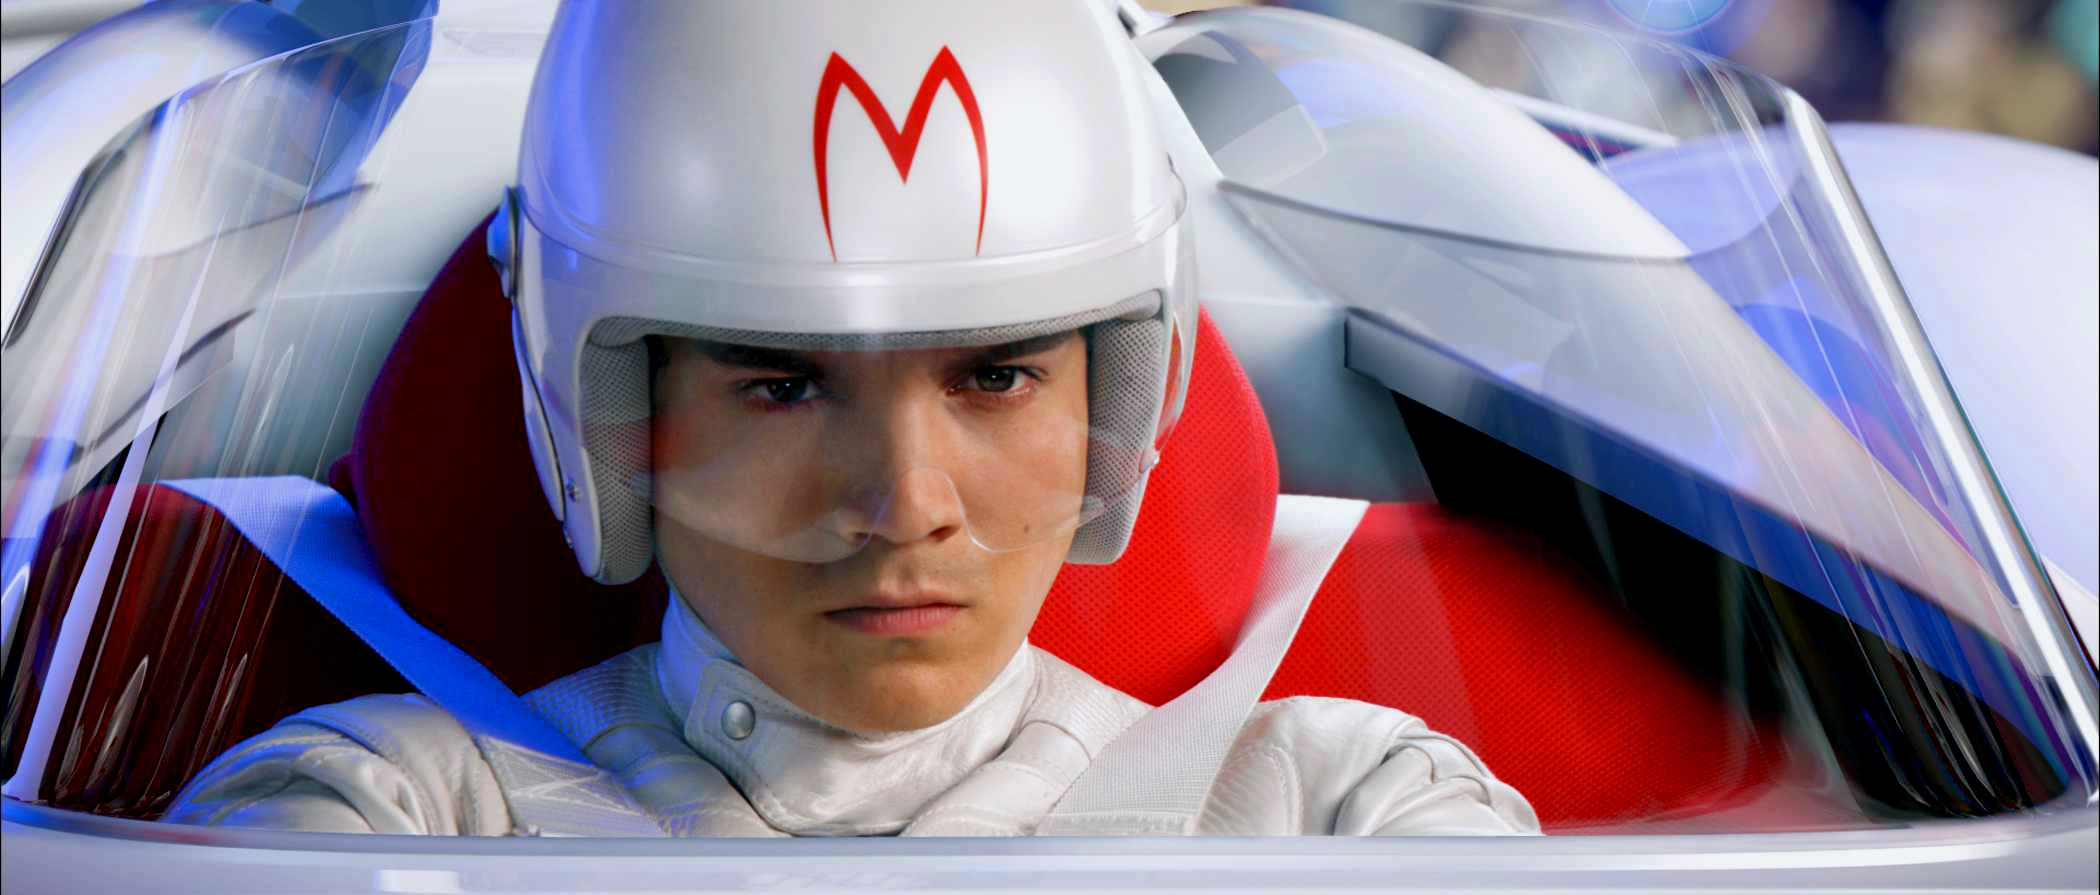 Looking Back at the Wachowskis' 2008 Masterpiece: 'Speed Racer' | Observer